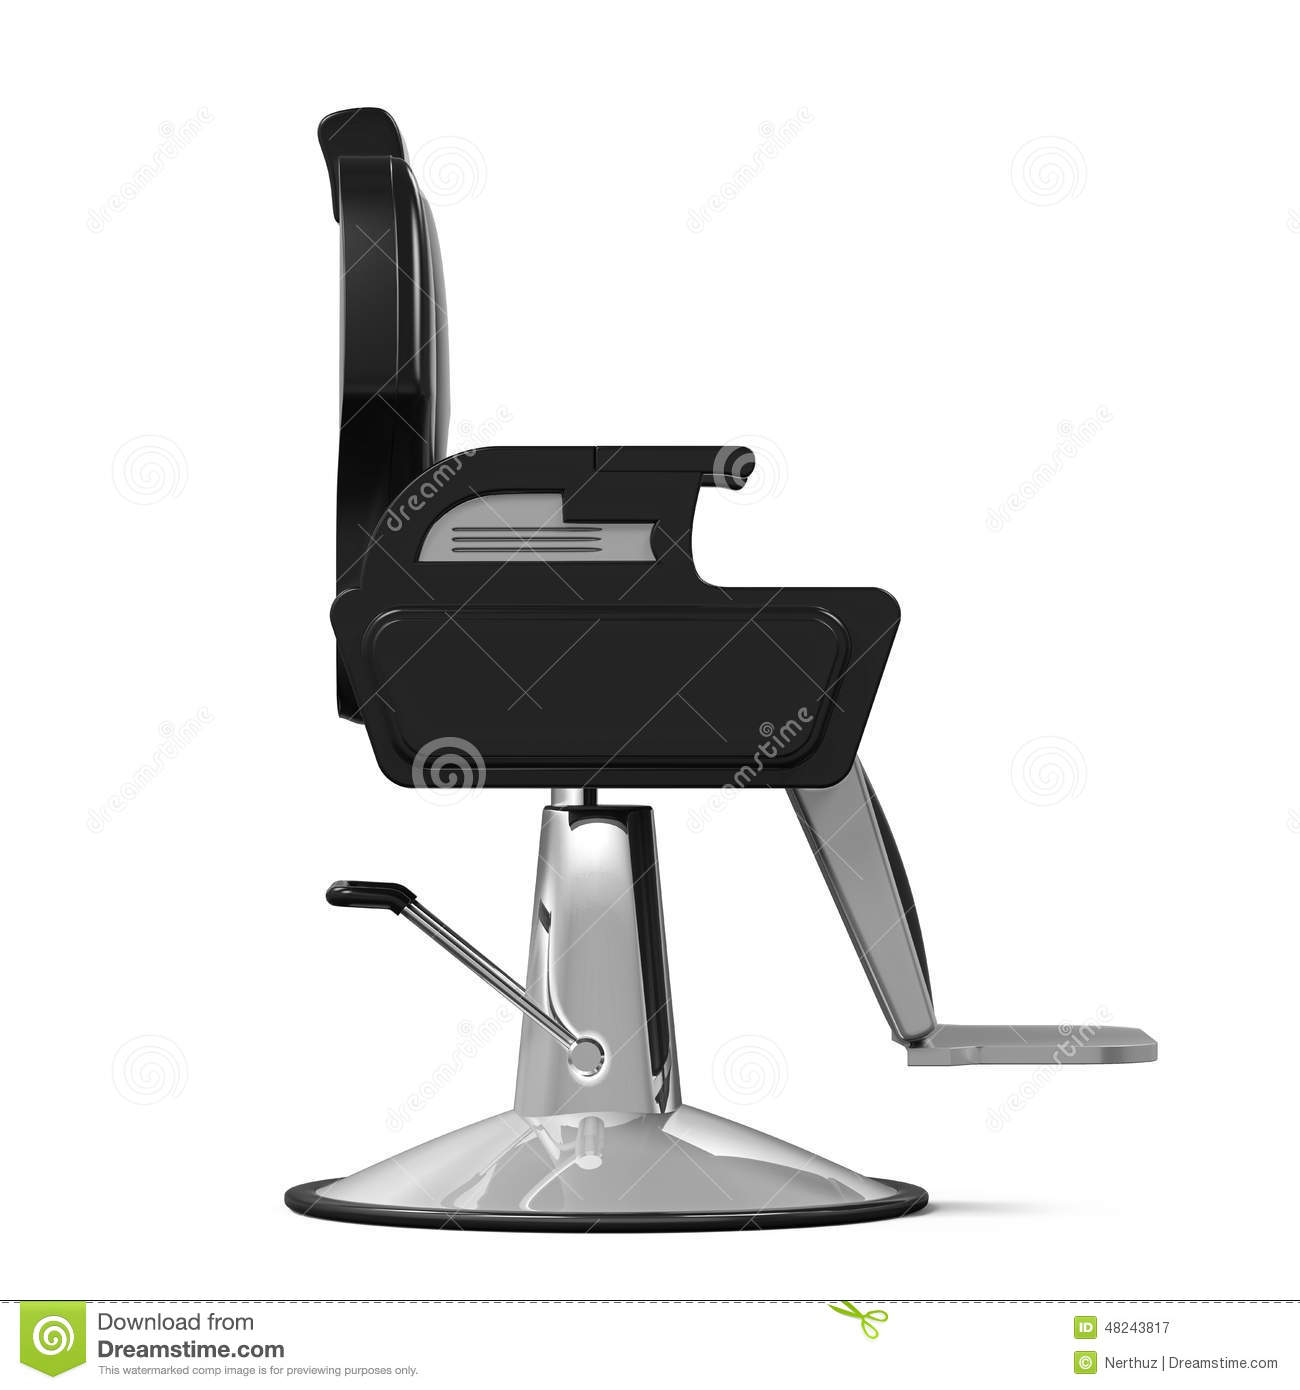 Barber chair vector - Barber Chair Isolated Royalty Free Stock Photography